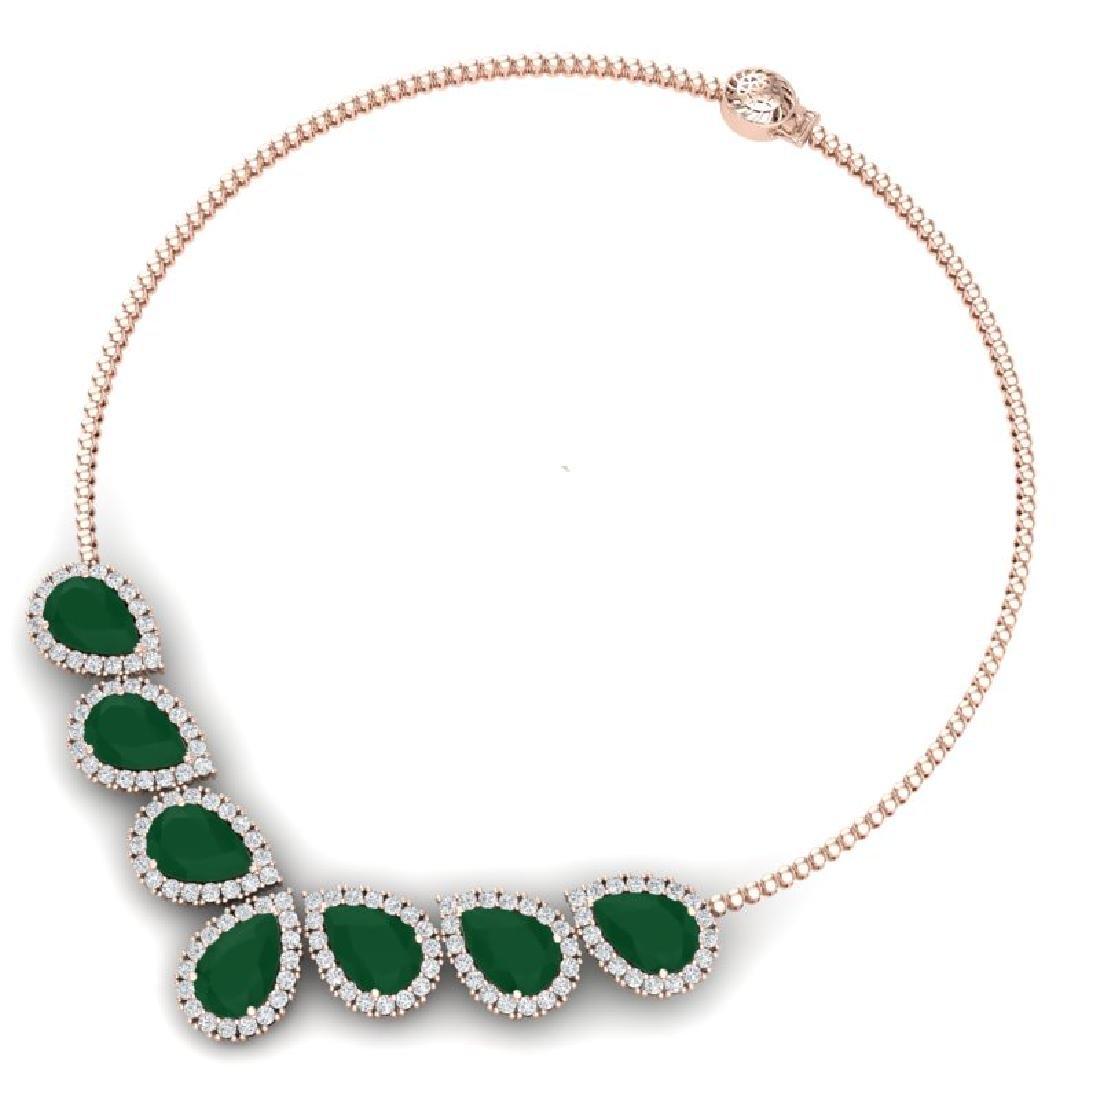 34.72 CTW Royalty Emerald & VS Diamond Necklace 18K - 3